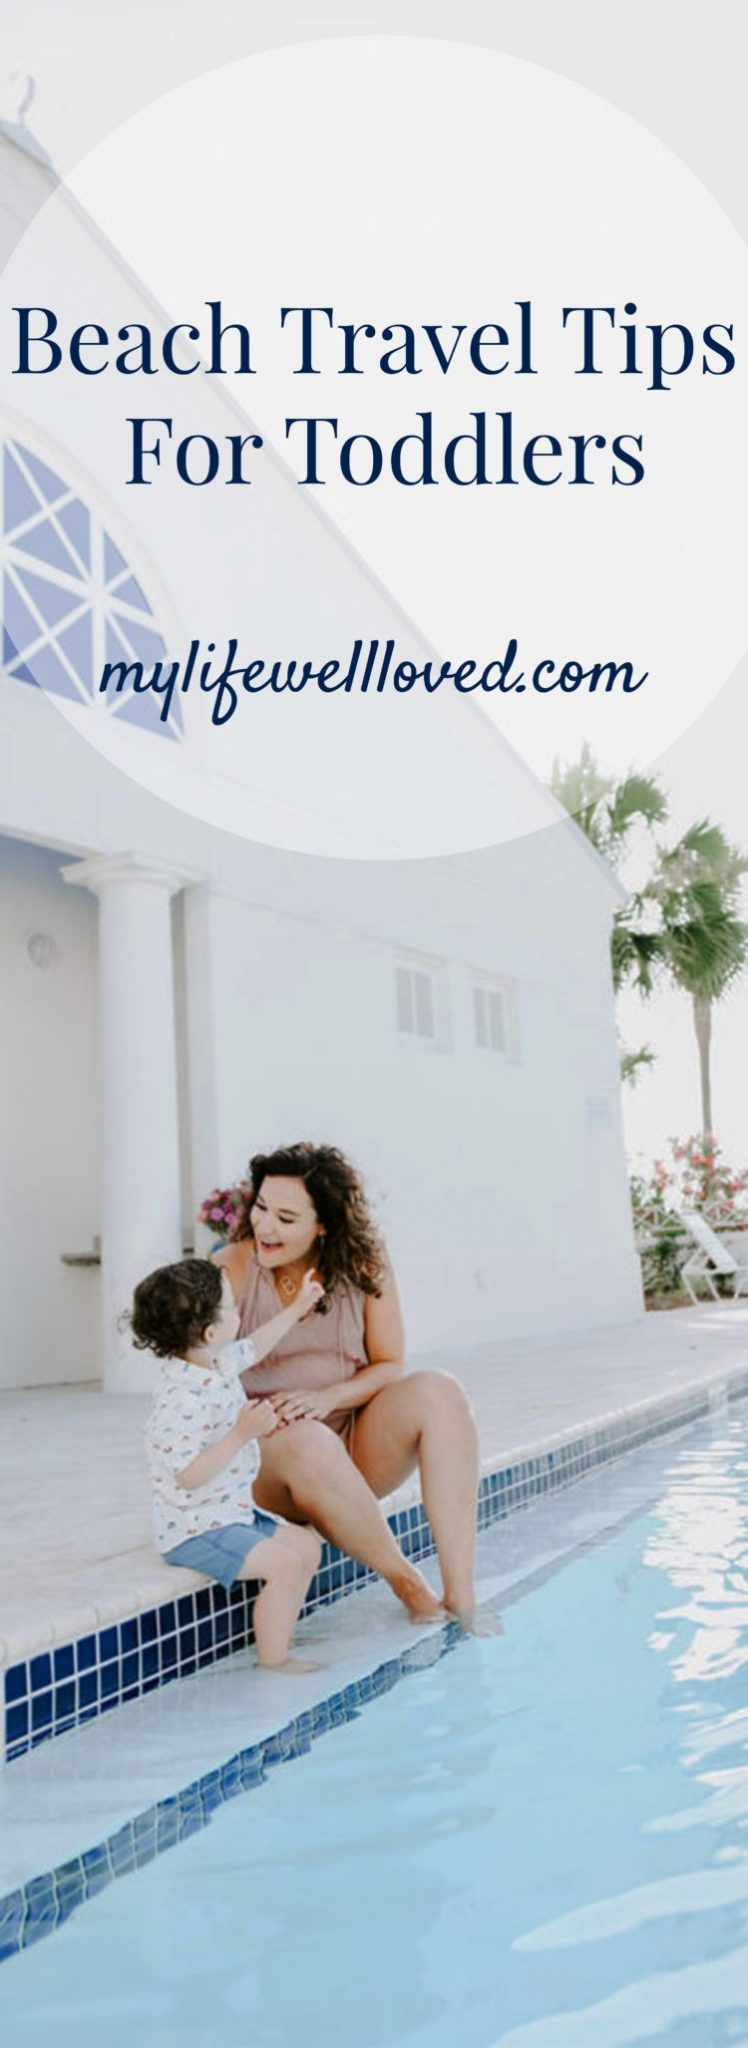 Tips on Travel with Kids from healthy lifestyle blogger Heather of MyLifeWellLoved.com // Whether you're a toddler mom or have a new baby, this post is super helpful for your next beach trip! #mom #travel #familytravel sunscreen